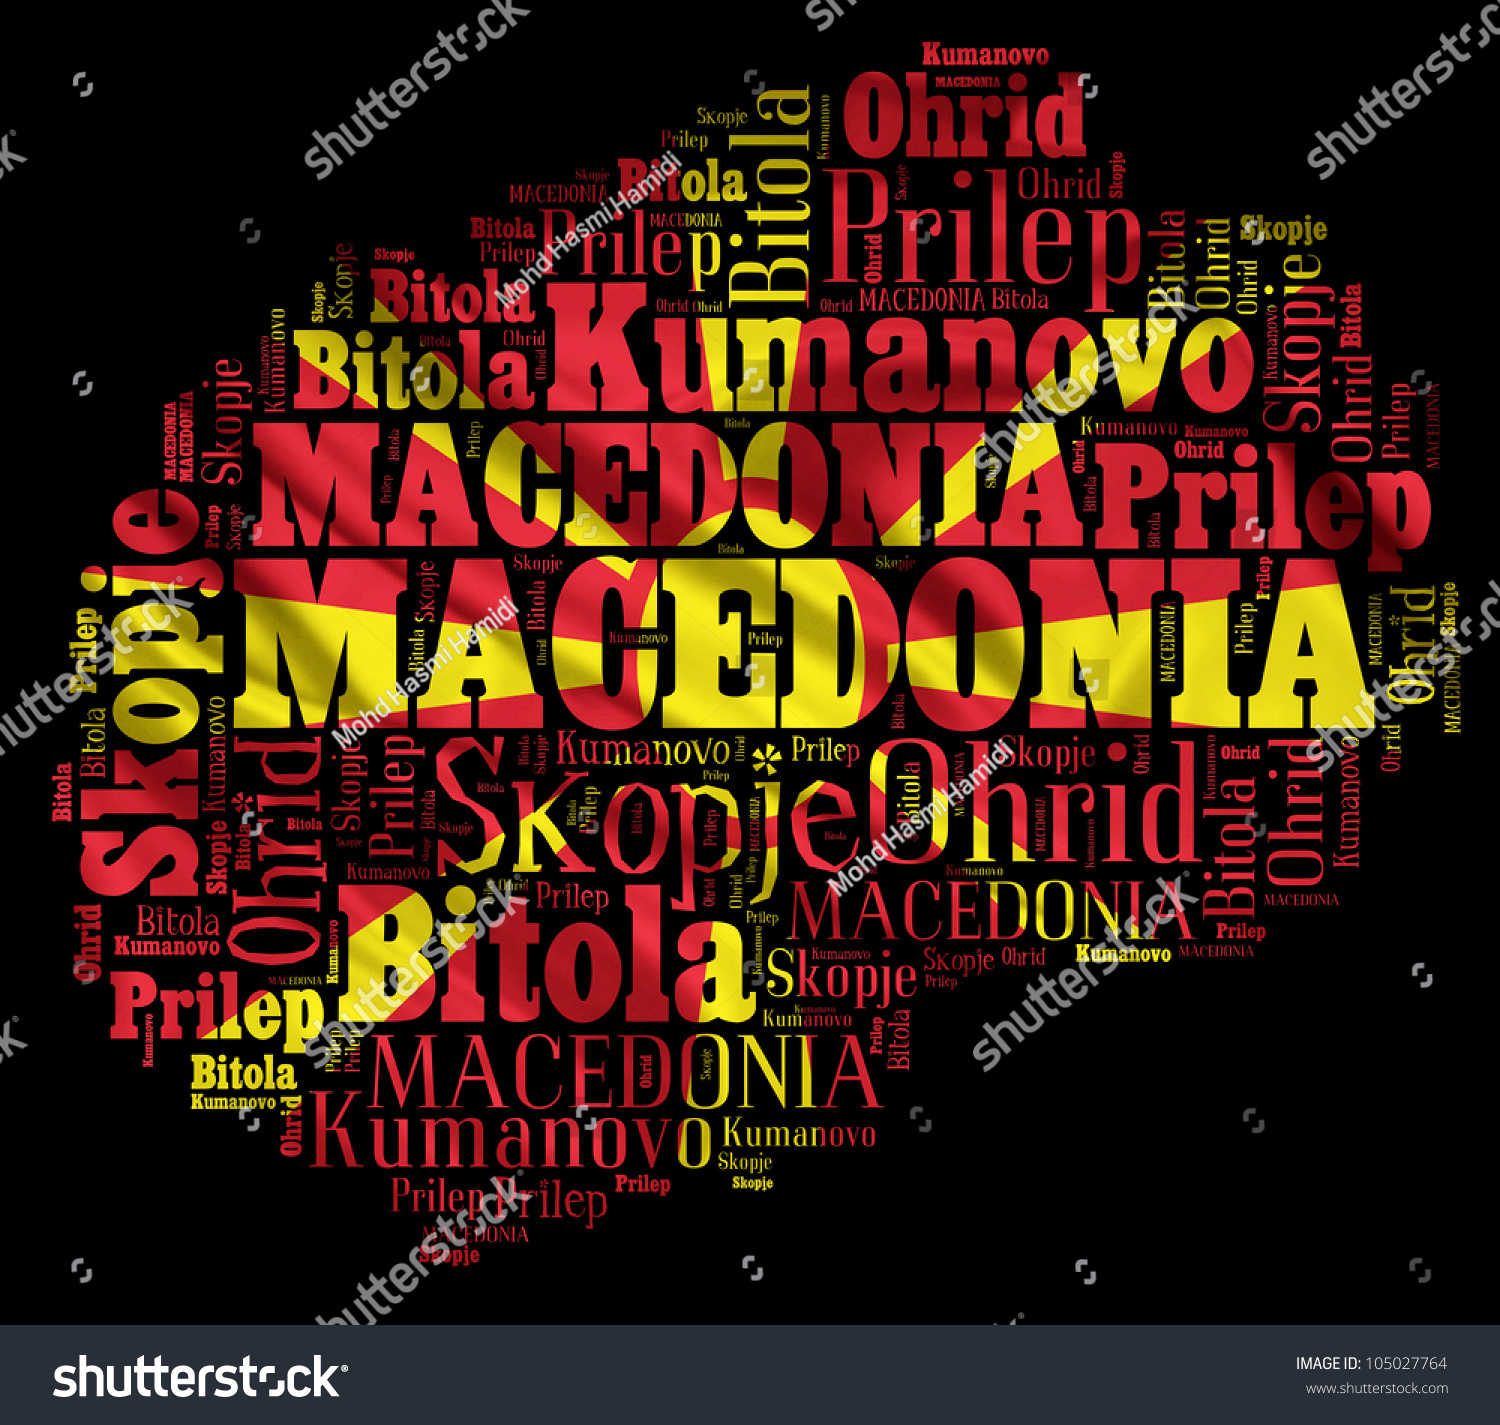 Macedonia map words cloud major cities stock illustration 105027764 macedonia map words cloud major cities stock illustration 105027764 shutterstock publicscrutiny Image collections